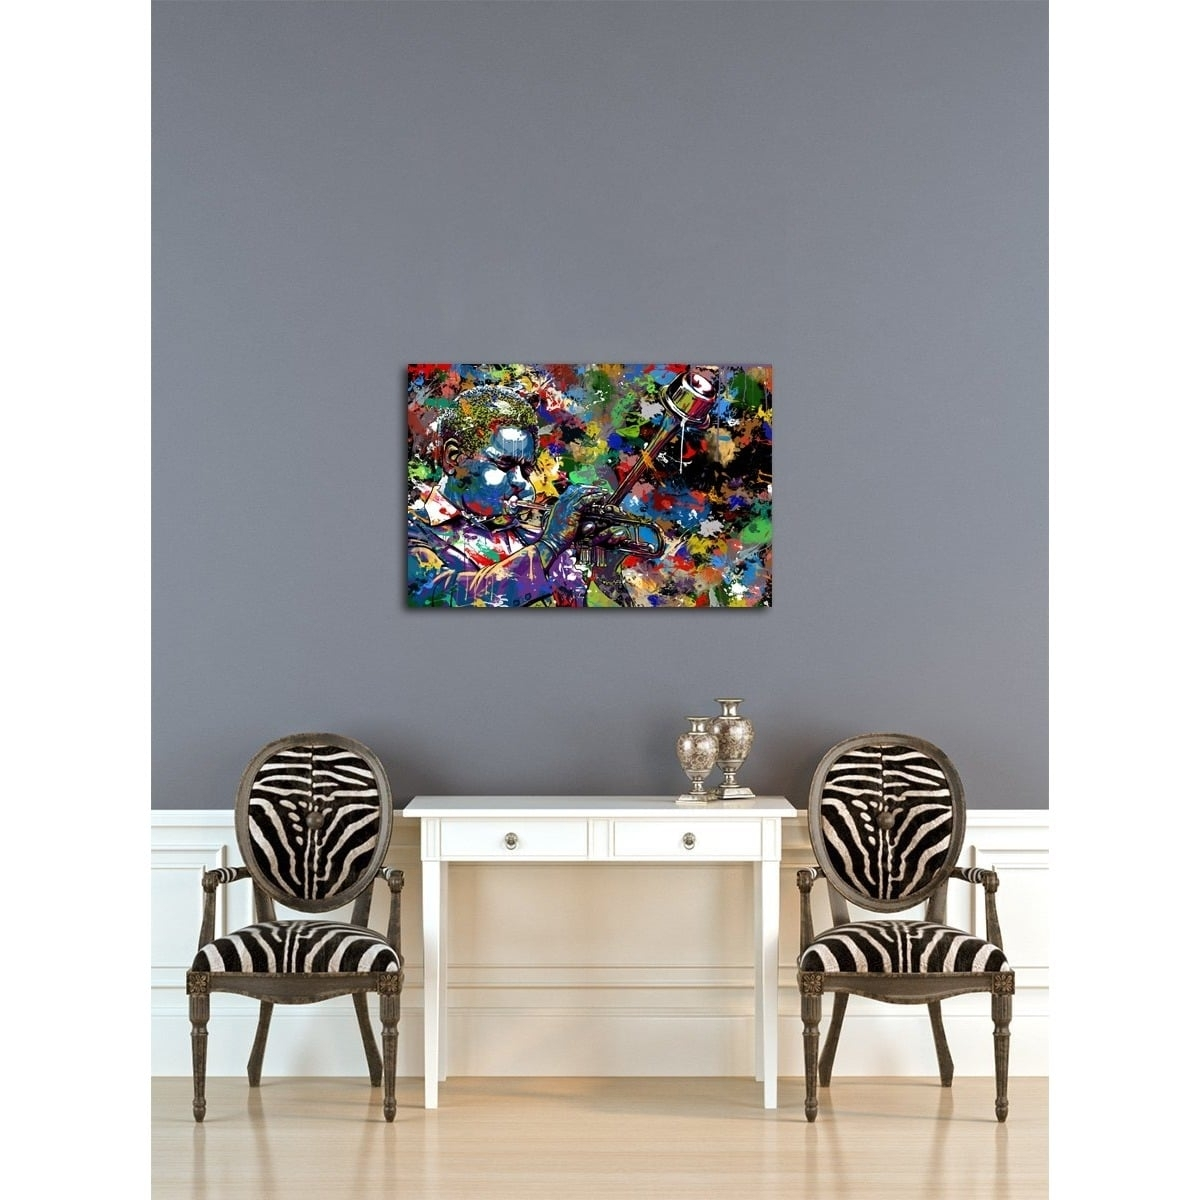 Maxwell Dickson 'jazz Musician' Canvas Wall Art – Free Shipping With Regard To Most Current Jazz Canvas Wall Art (View 14 of 15)